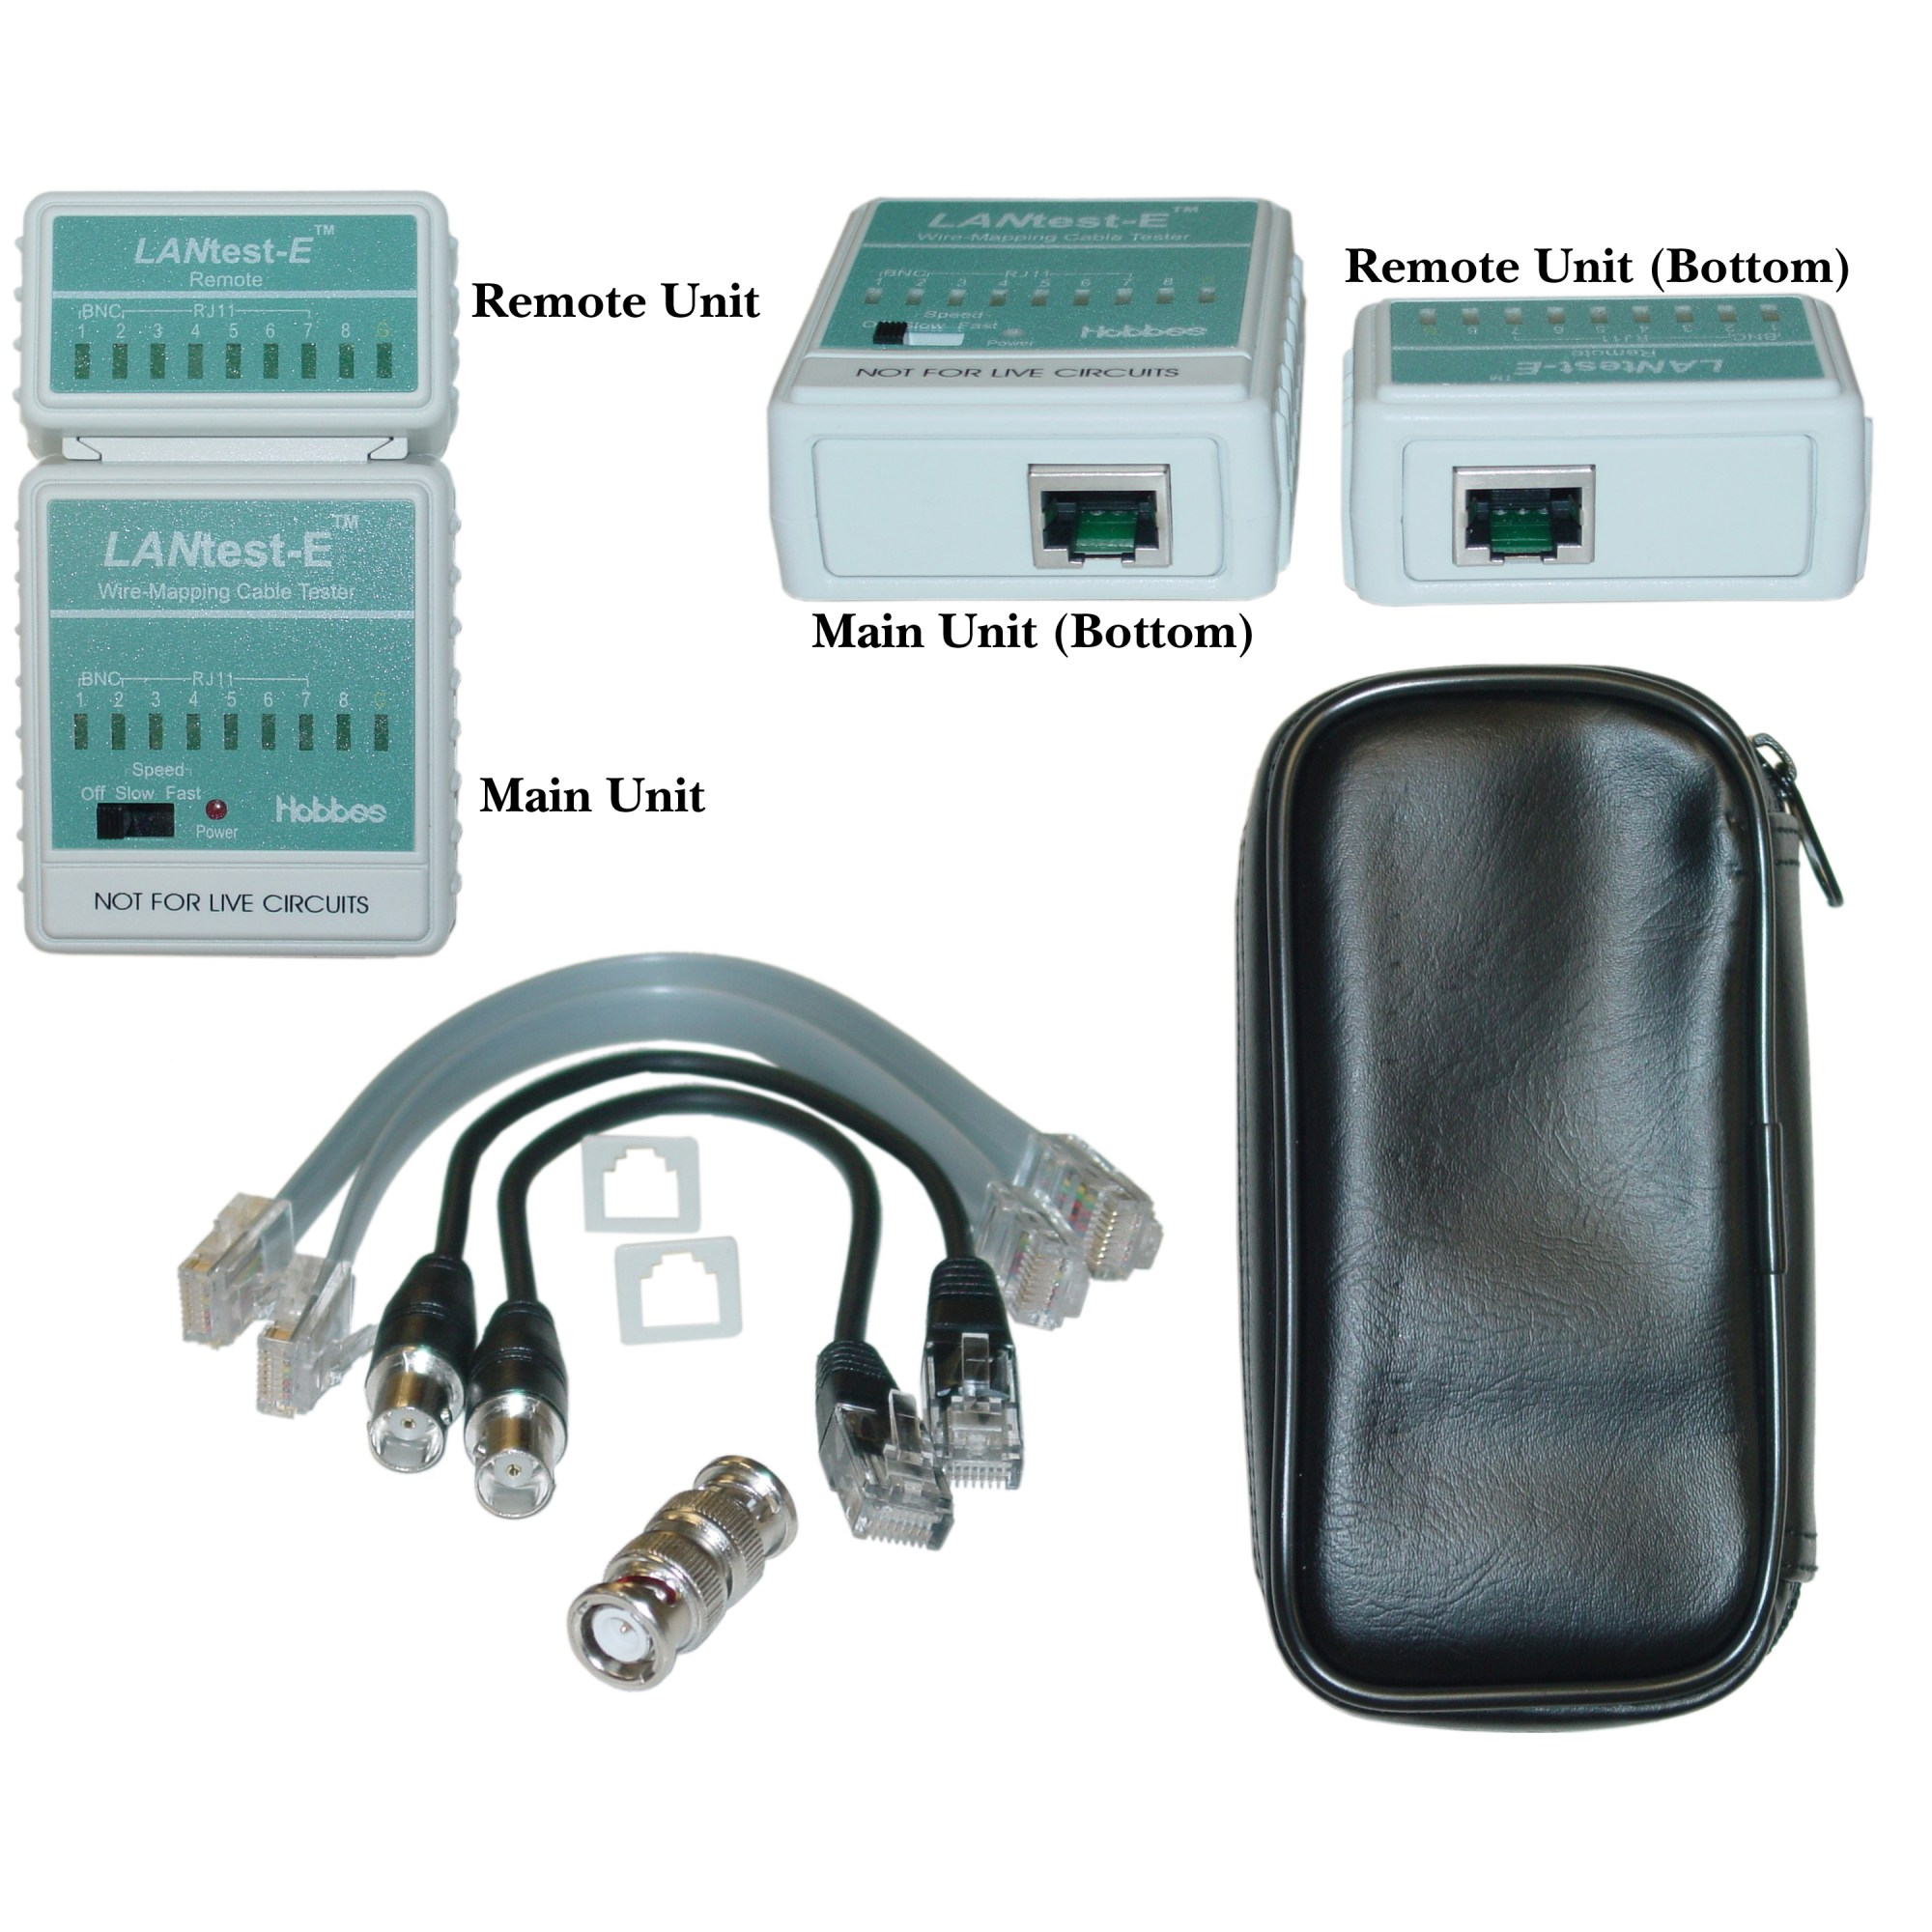 hight resolution of cat and cat wiring diagram images lantest e wire mapping cable tester tests cat5e cat6 cat6a